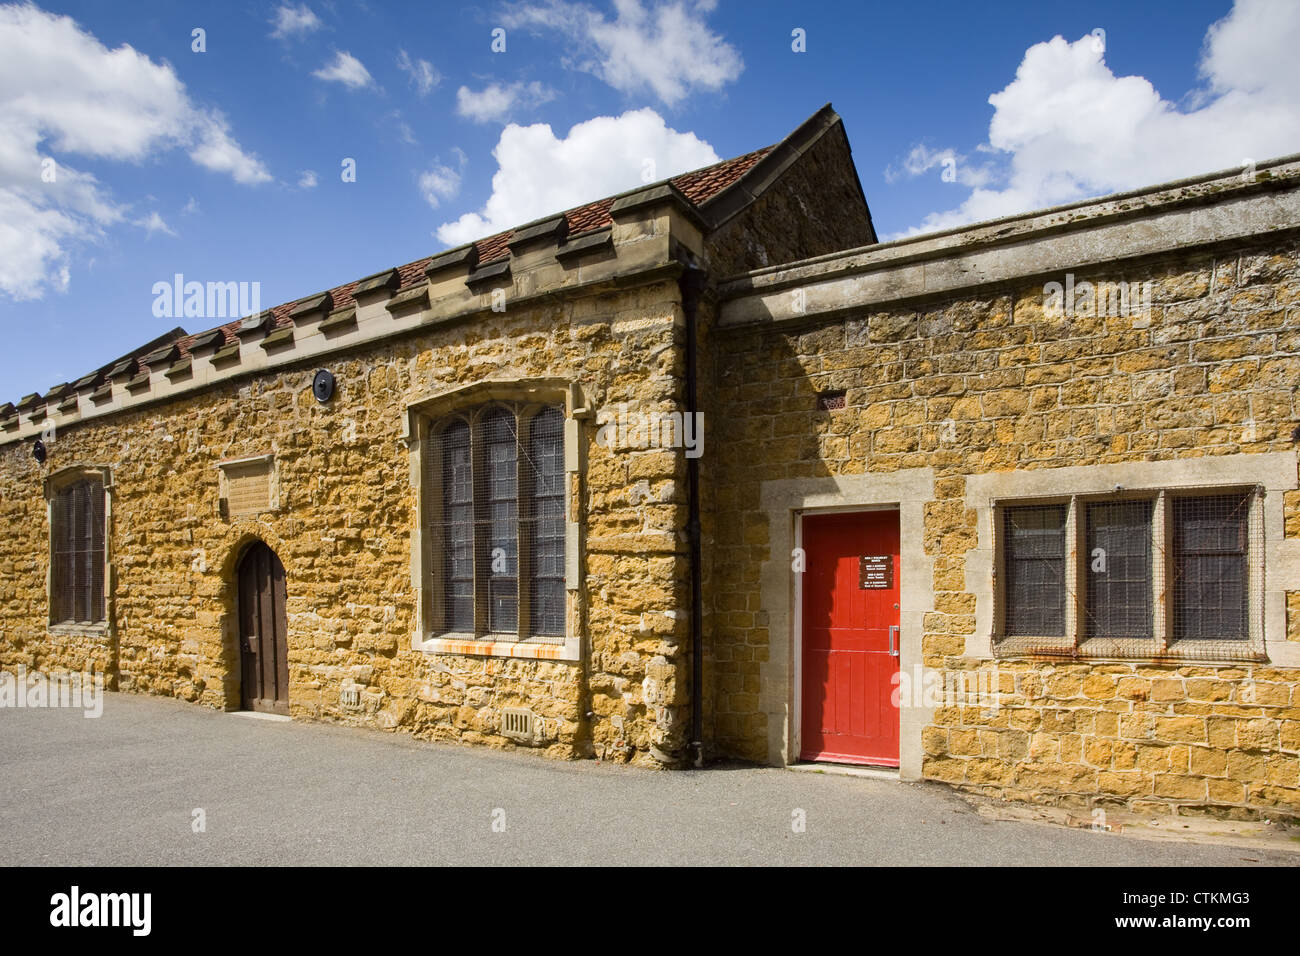 The Grammar School in the market town of Caistor on the edge of the Lincolnshire Wolds - Stock Image